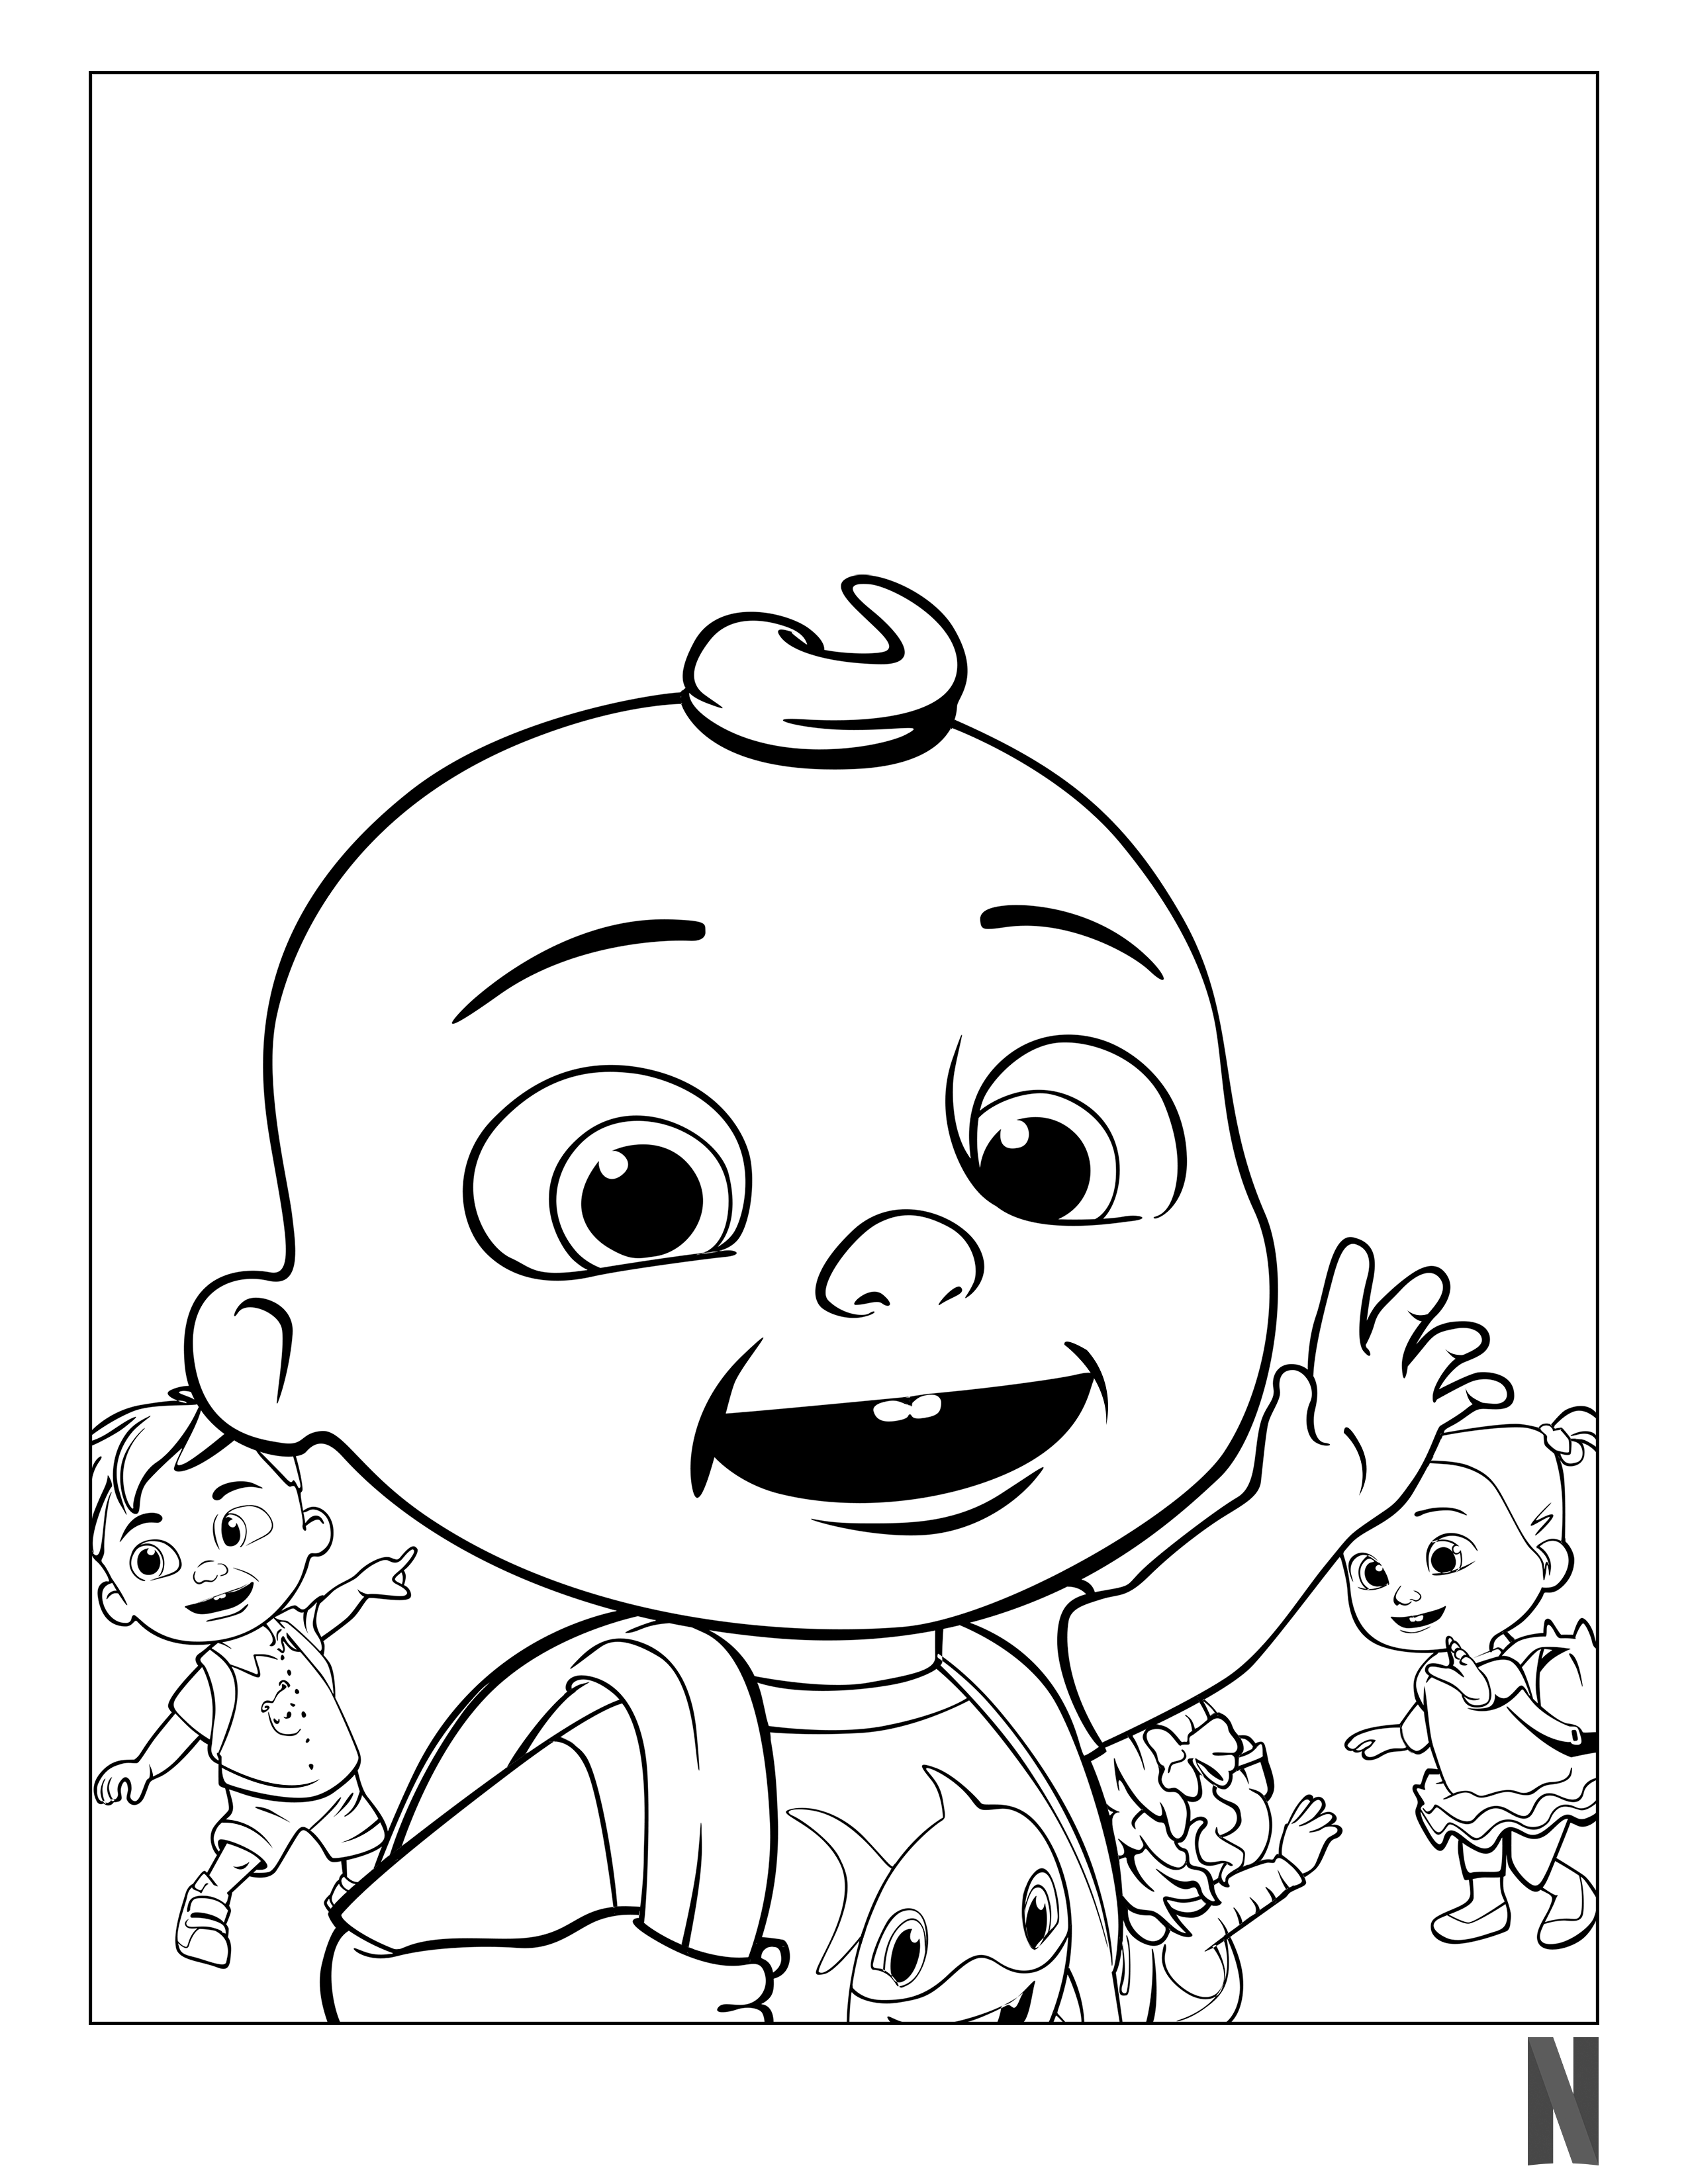 Cocomelon Coloring Page in 2020 | Coloring pages, Character, Fictional  characters